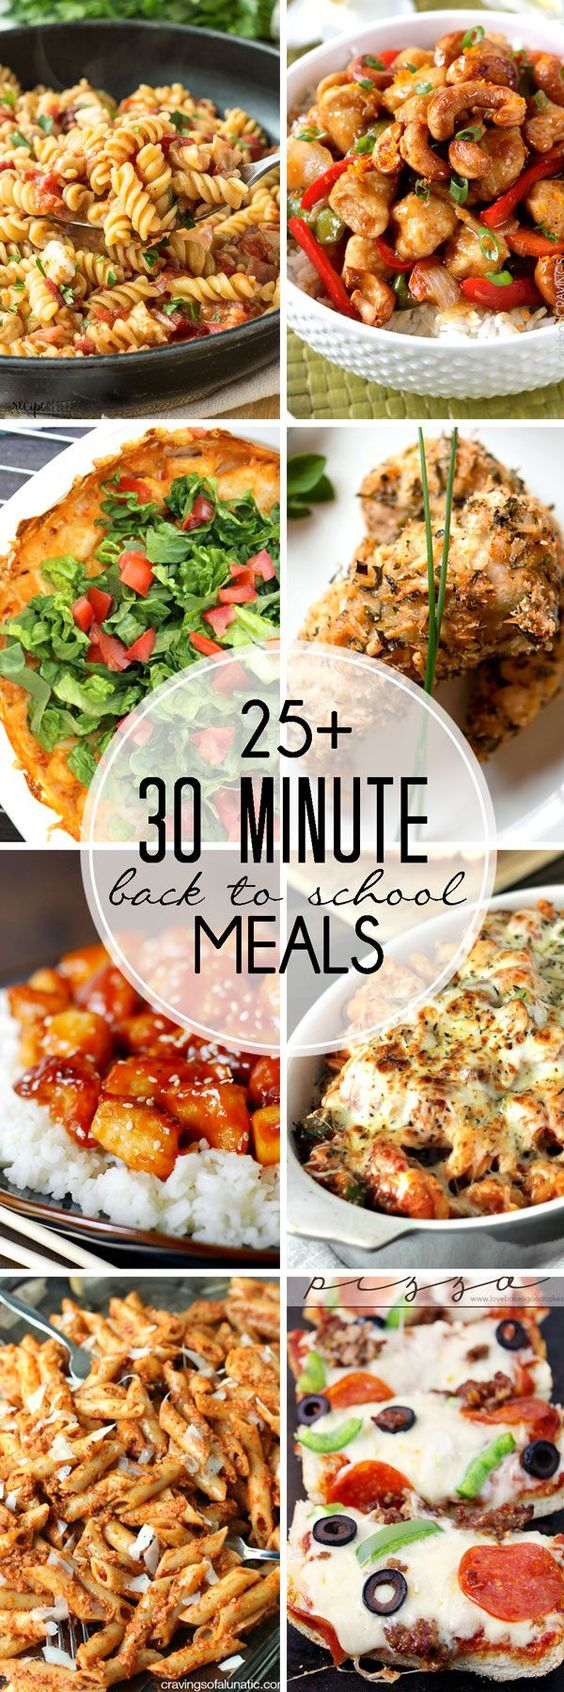 25+ 30 minute meals - These recipes are perfect for back to school dinners! | The Love Nerds::